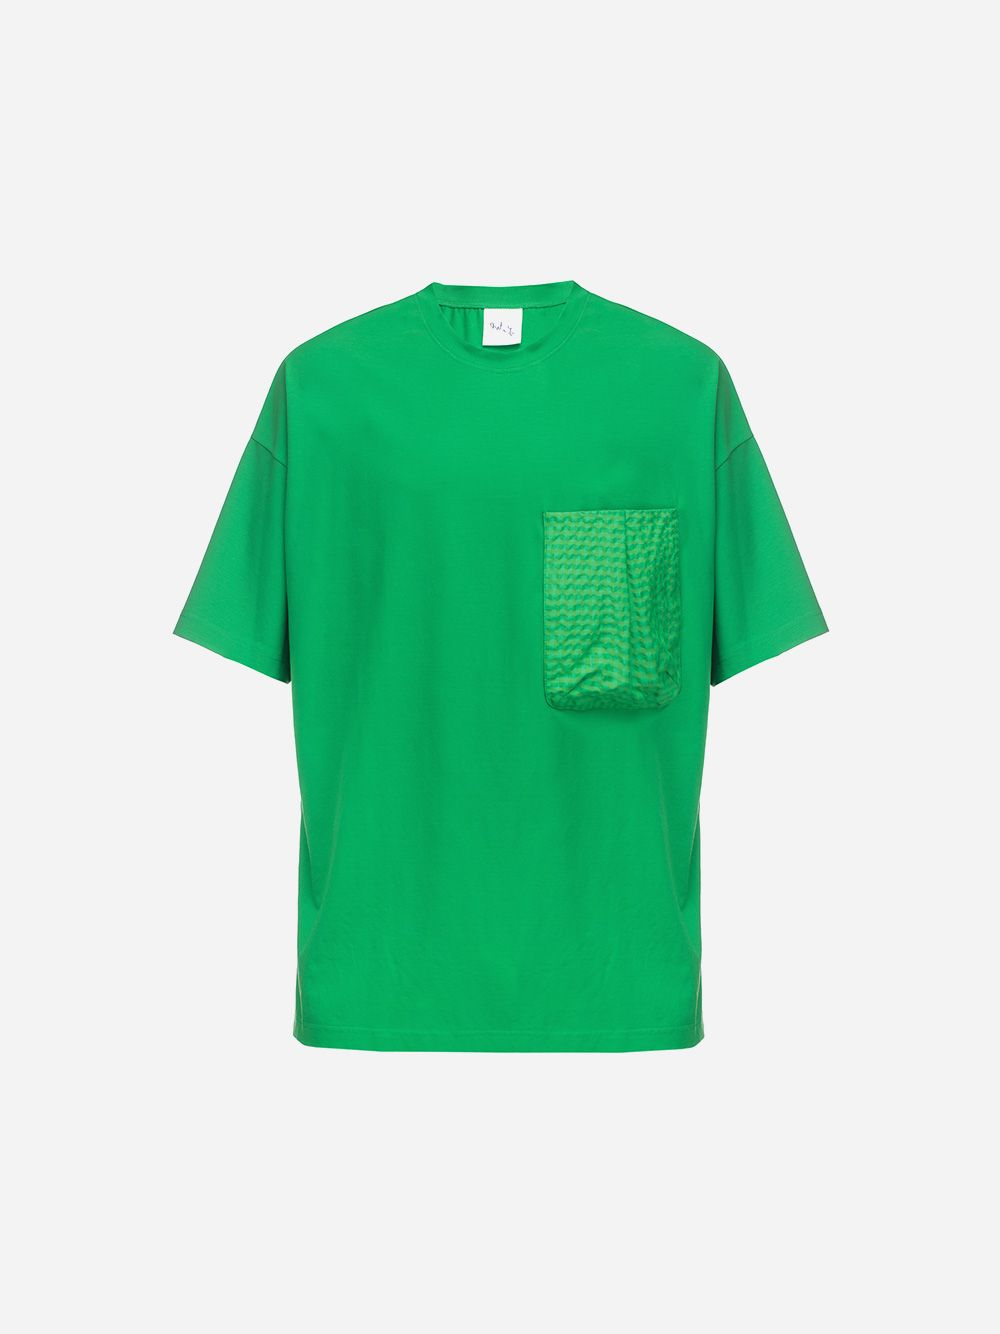 Green Pocket T-shirt | Rita Sá